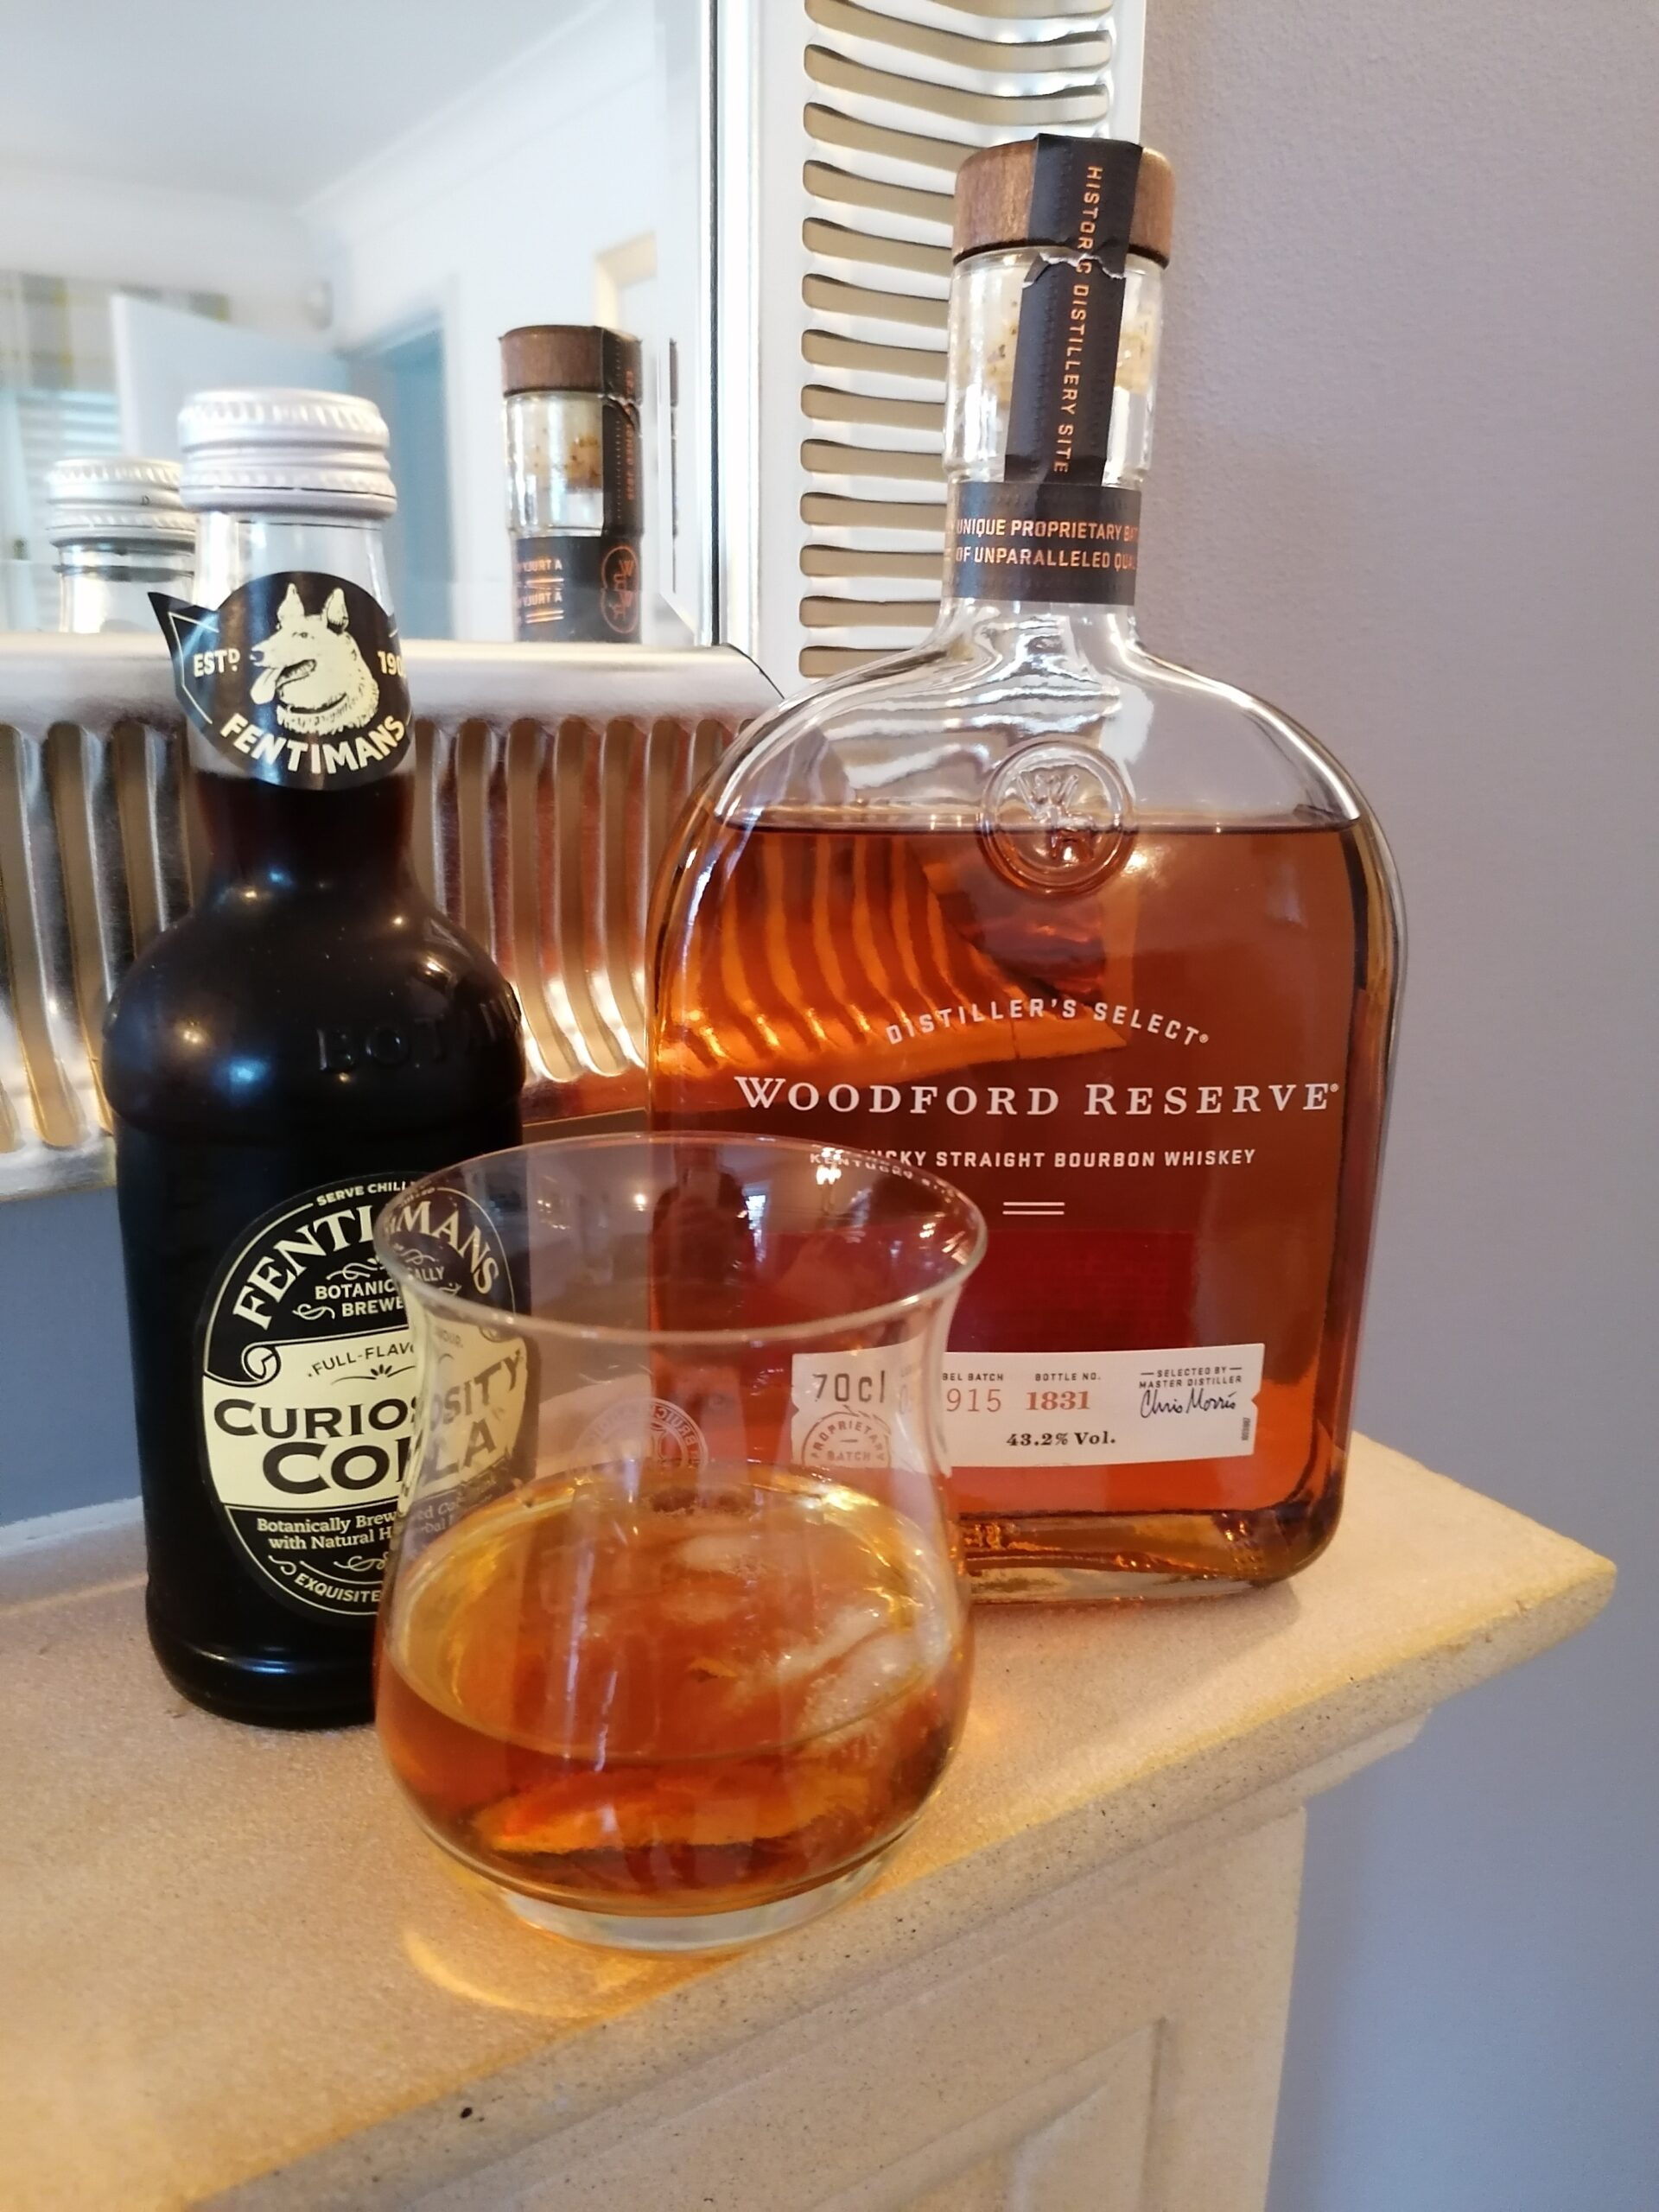 Read more about the article Woodford Reserve and Fentimans Curiosity Cola!